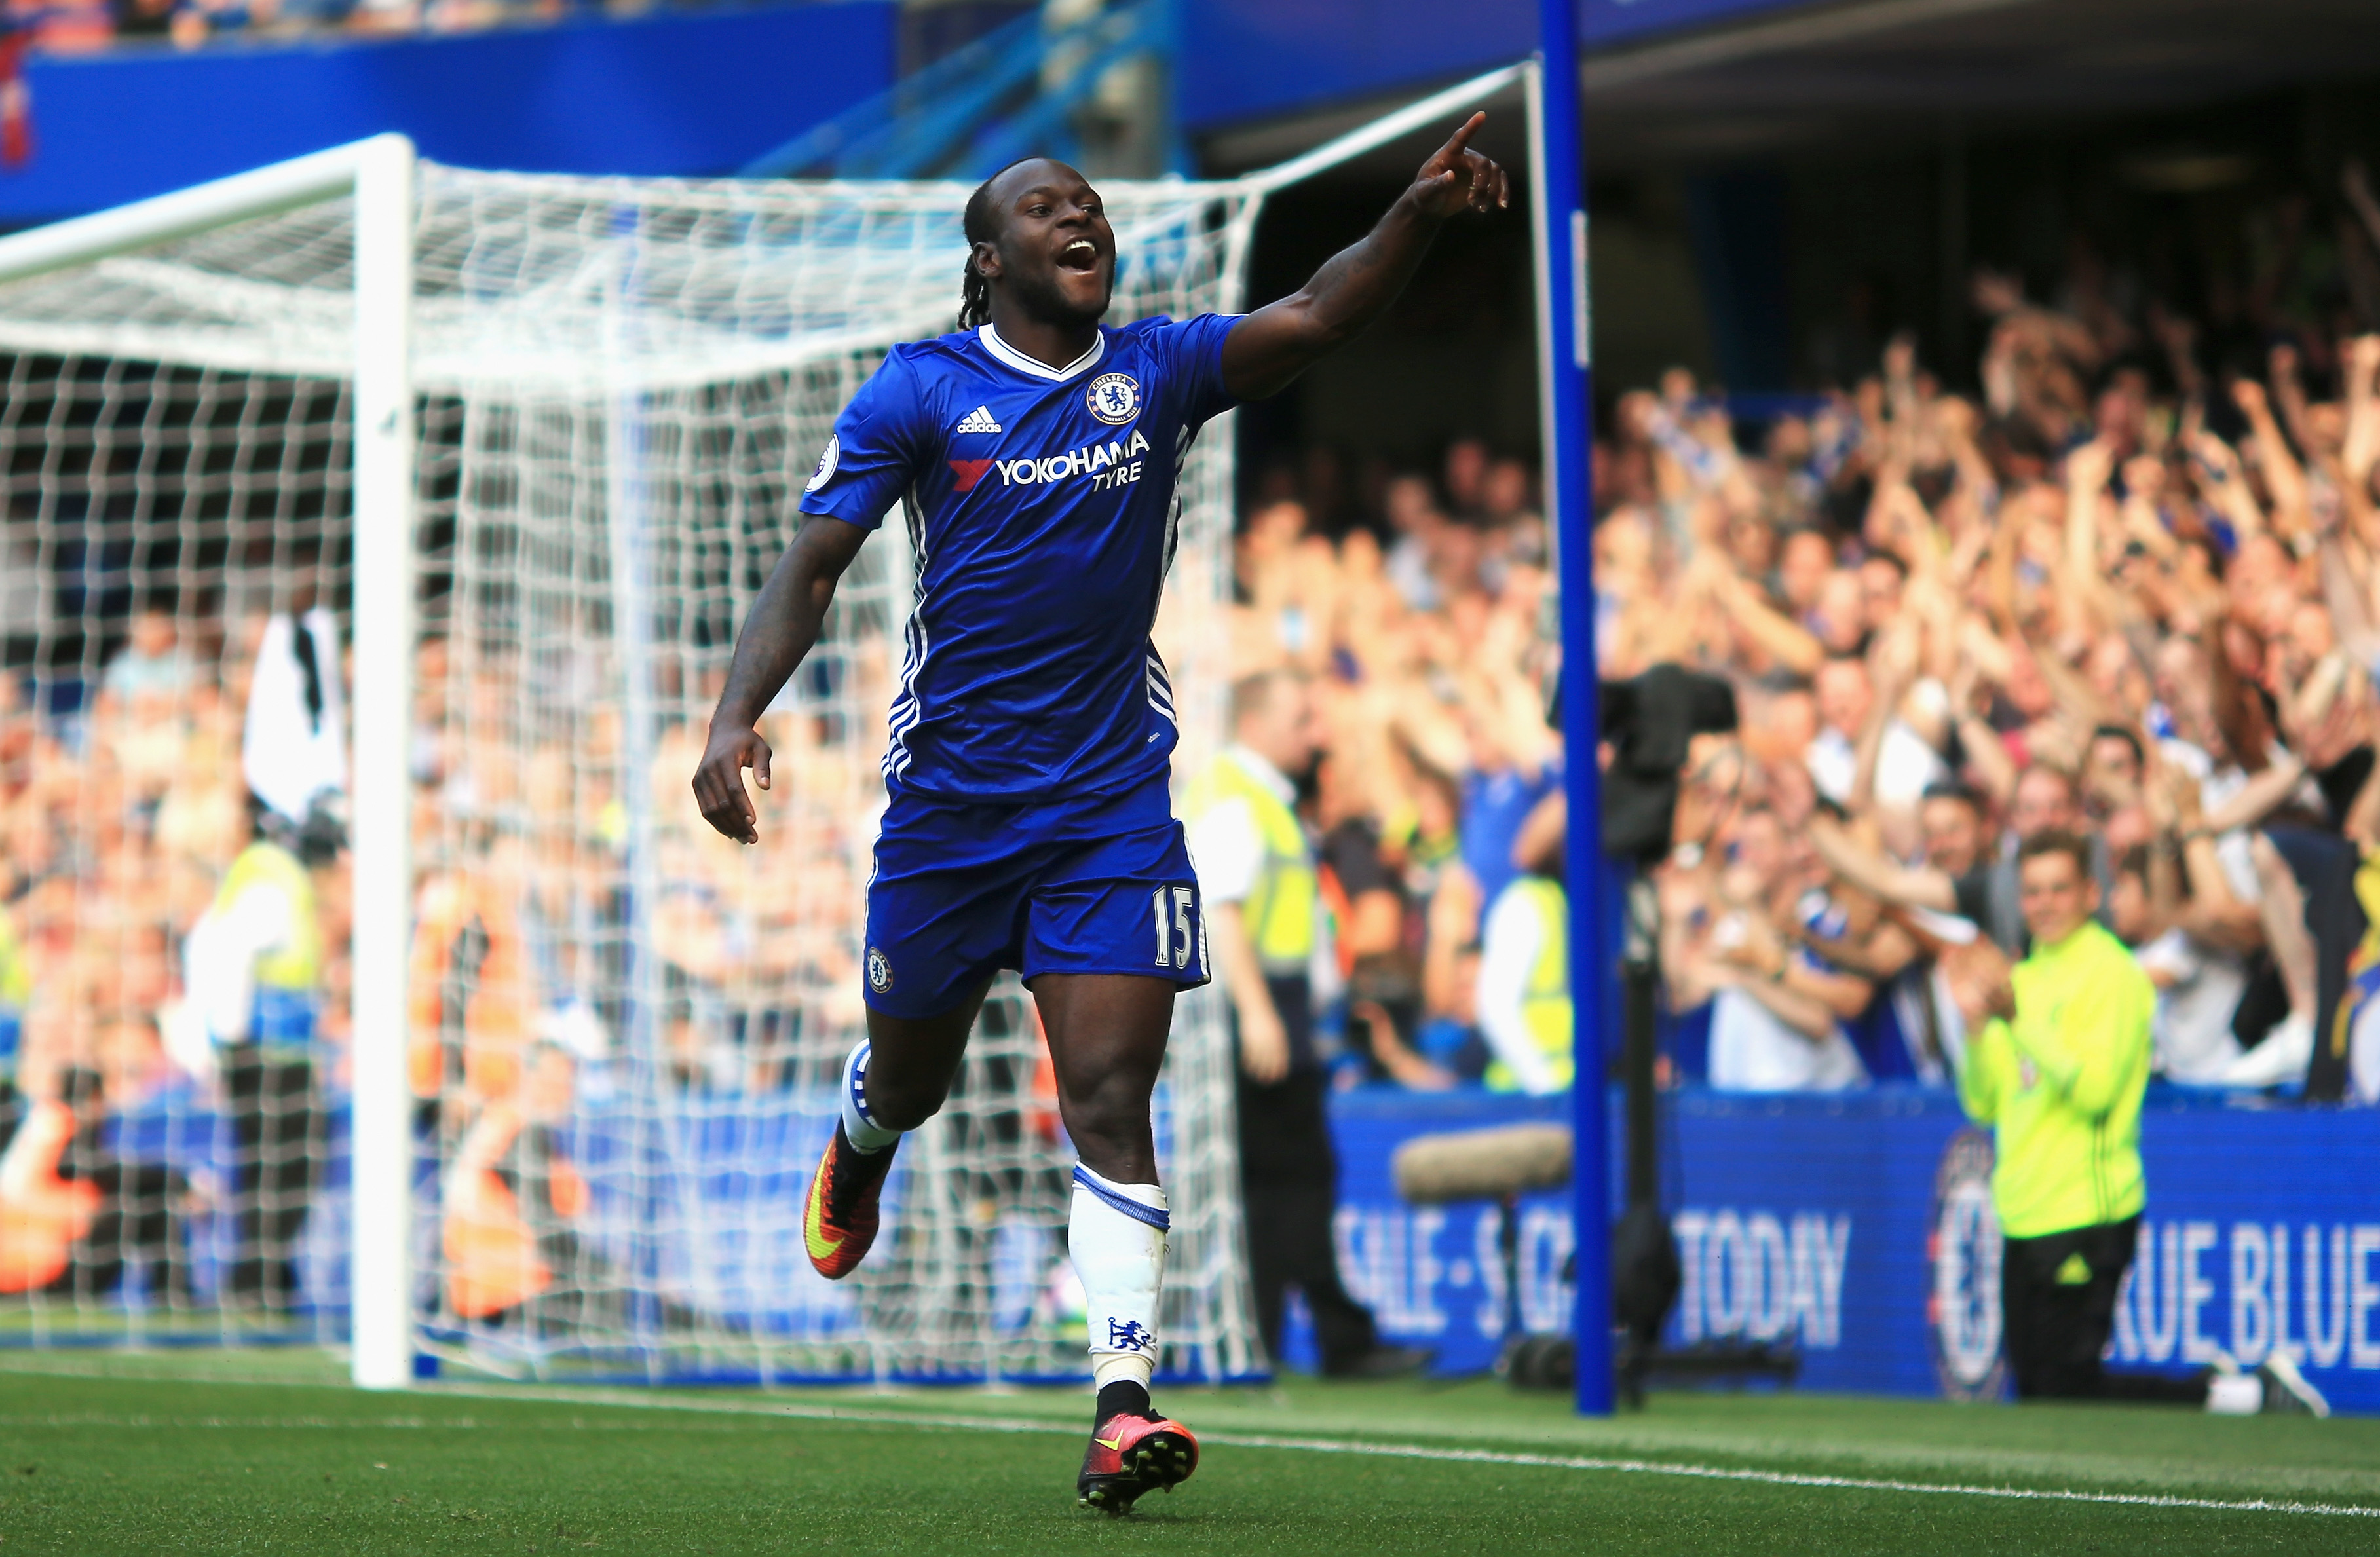 Victor Moses scores his first Premier League goal for Chelsea four years and three clubs after his first